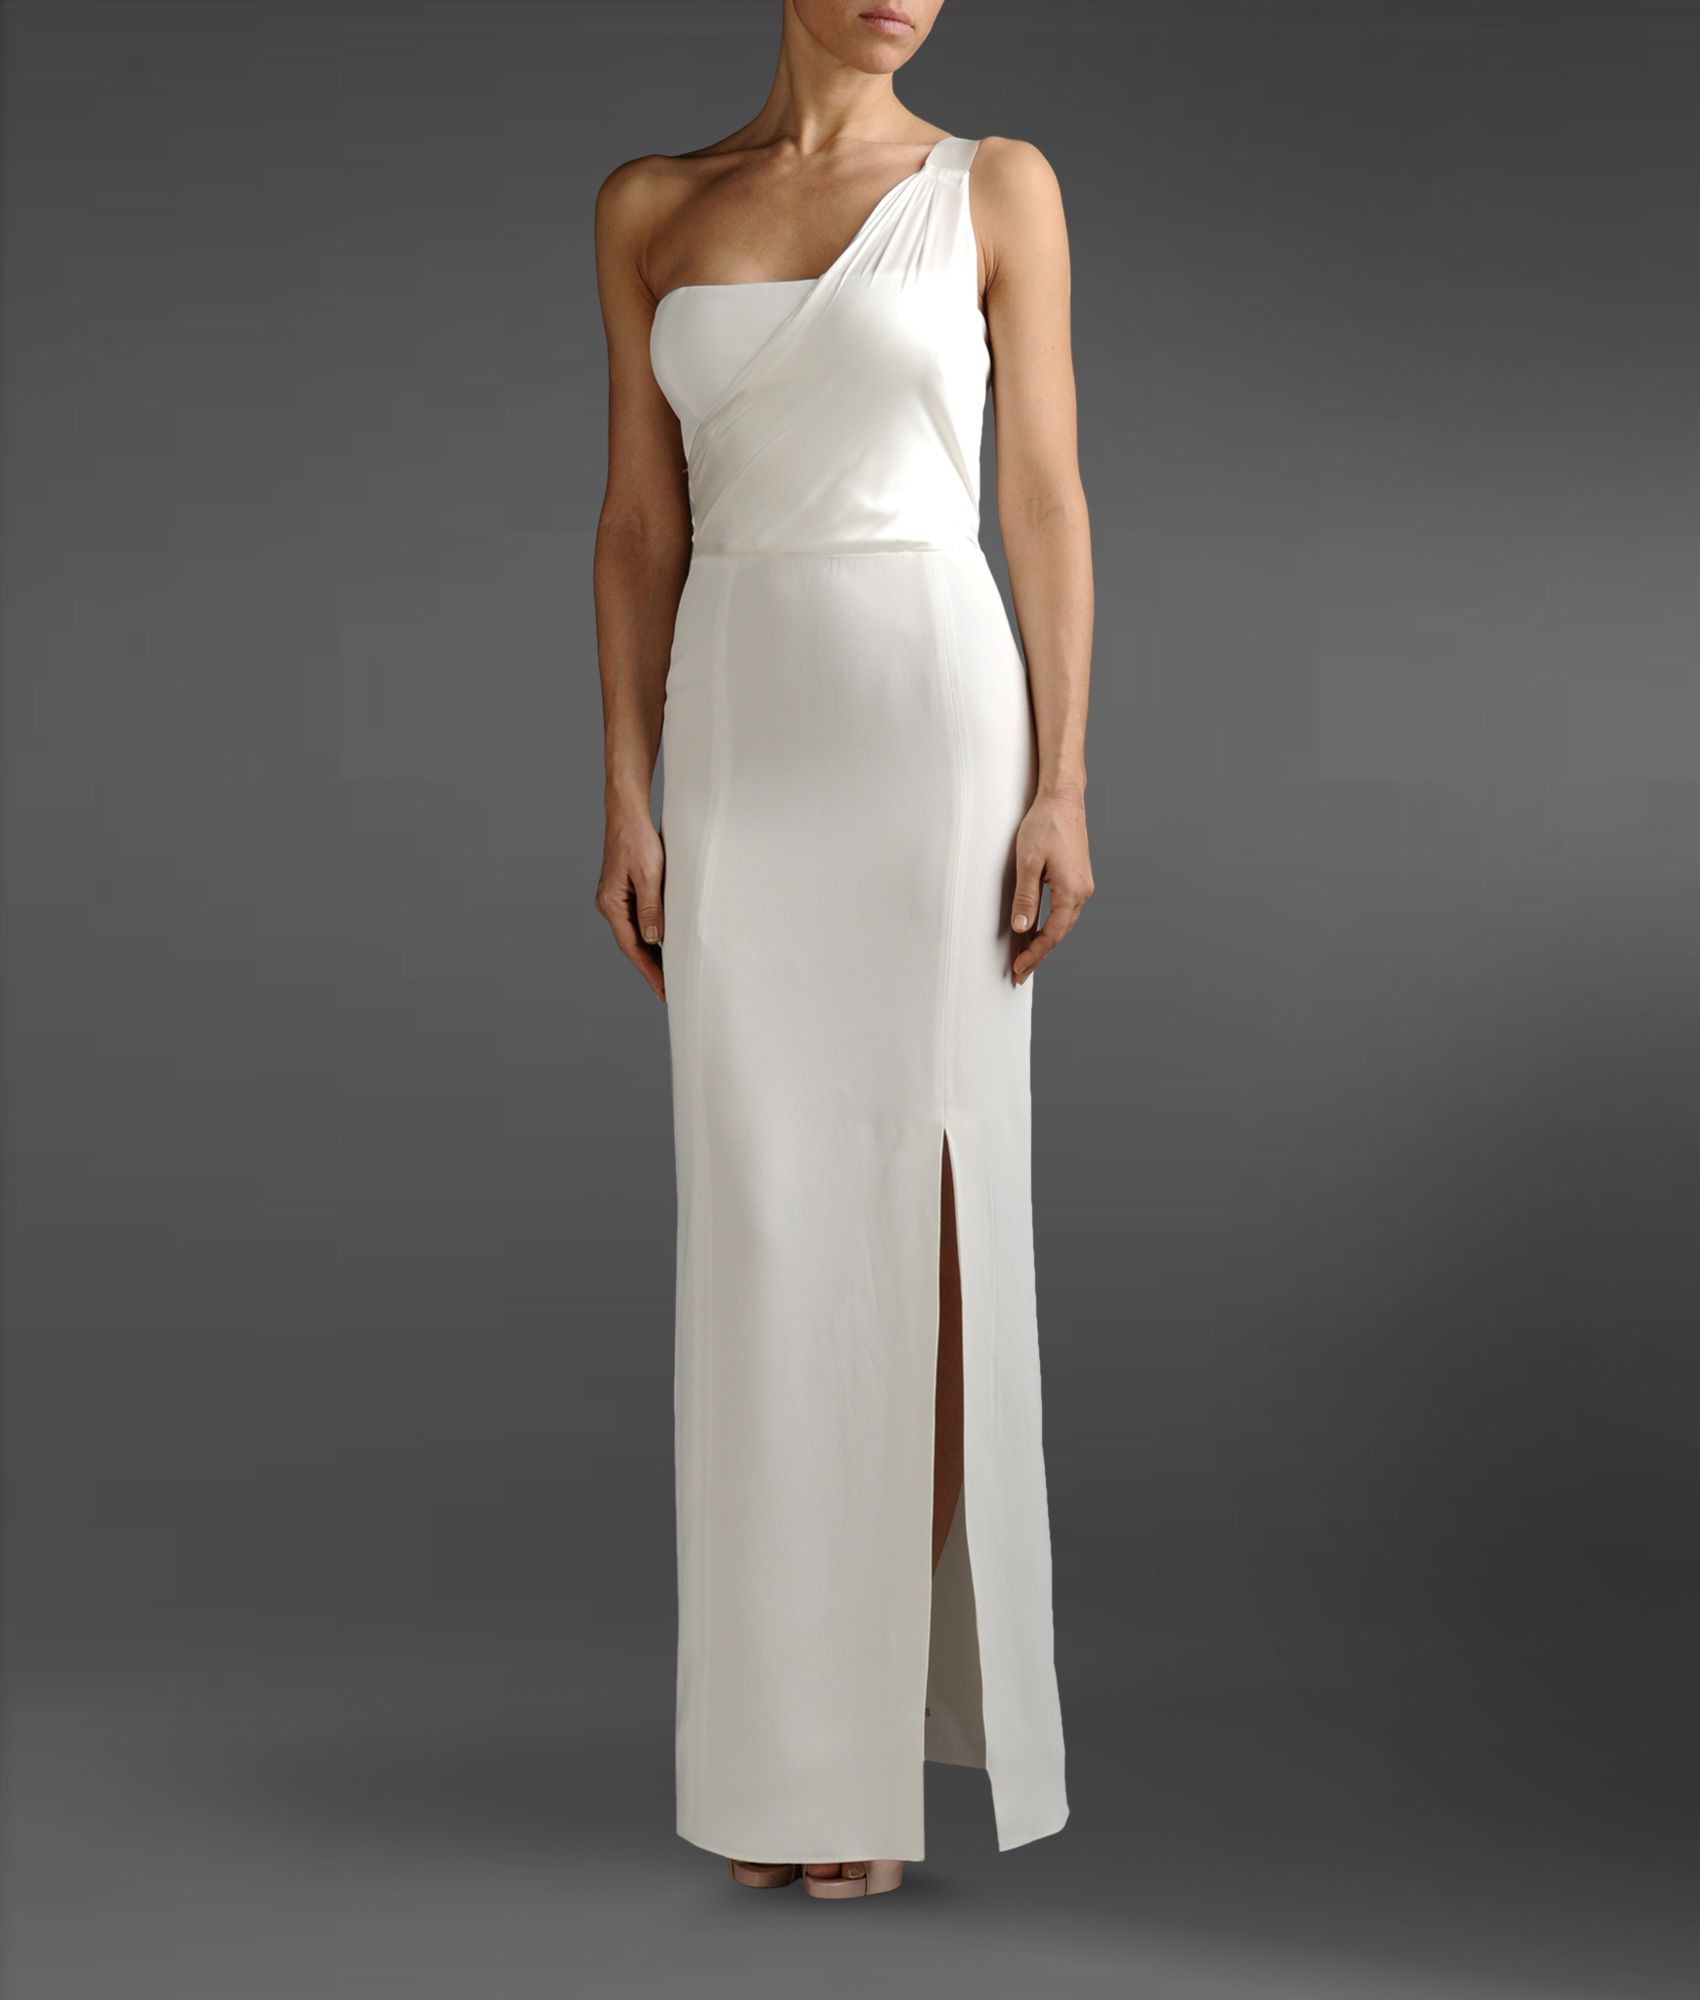 Emporio armani Long Dress in White | Lyst